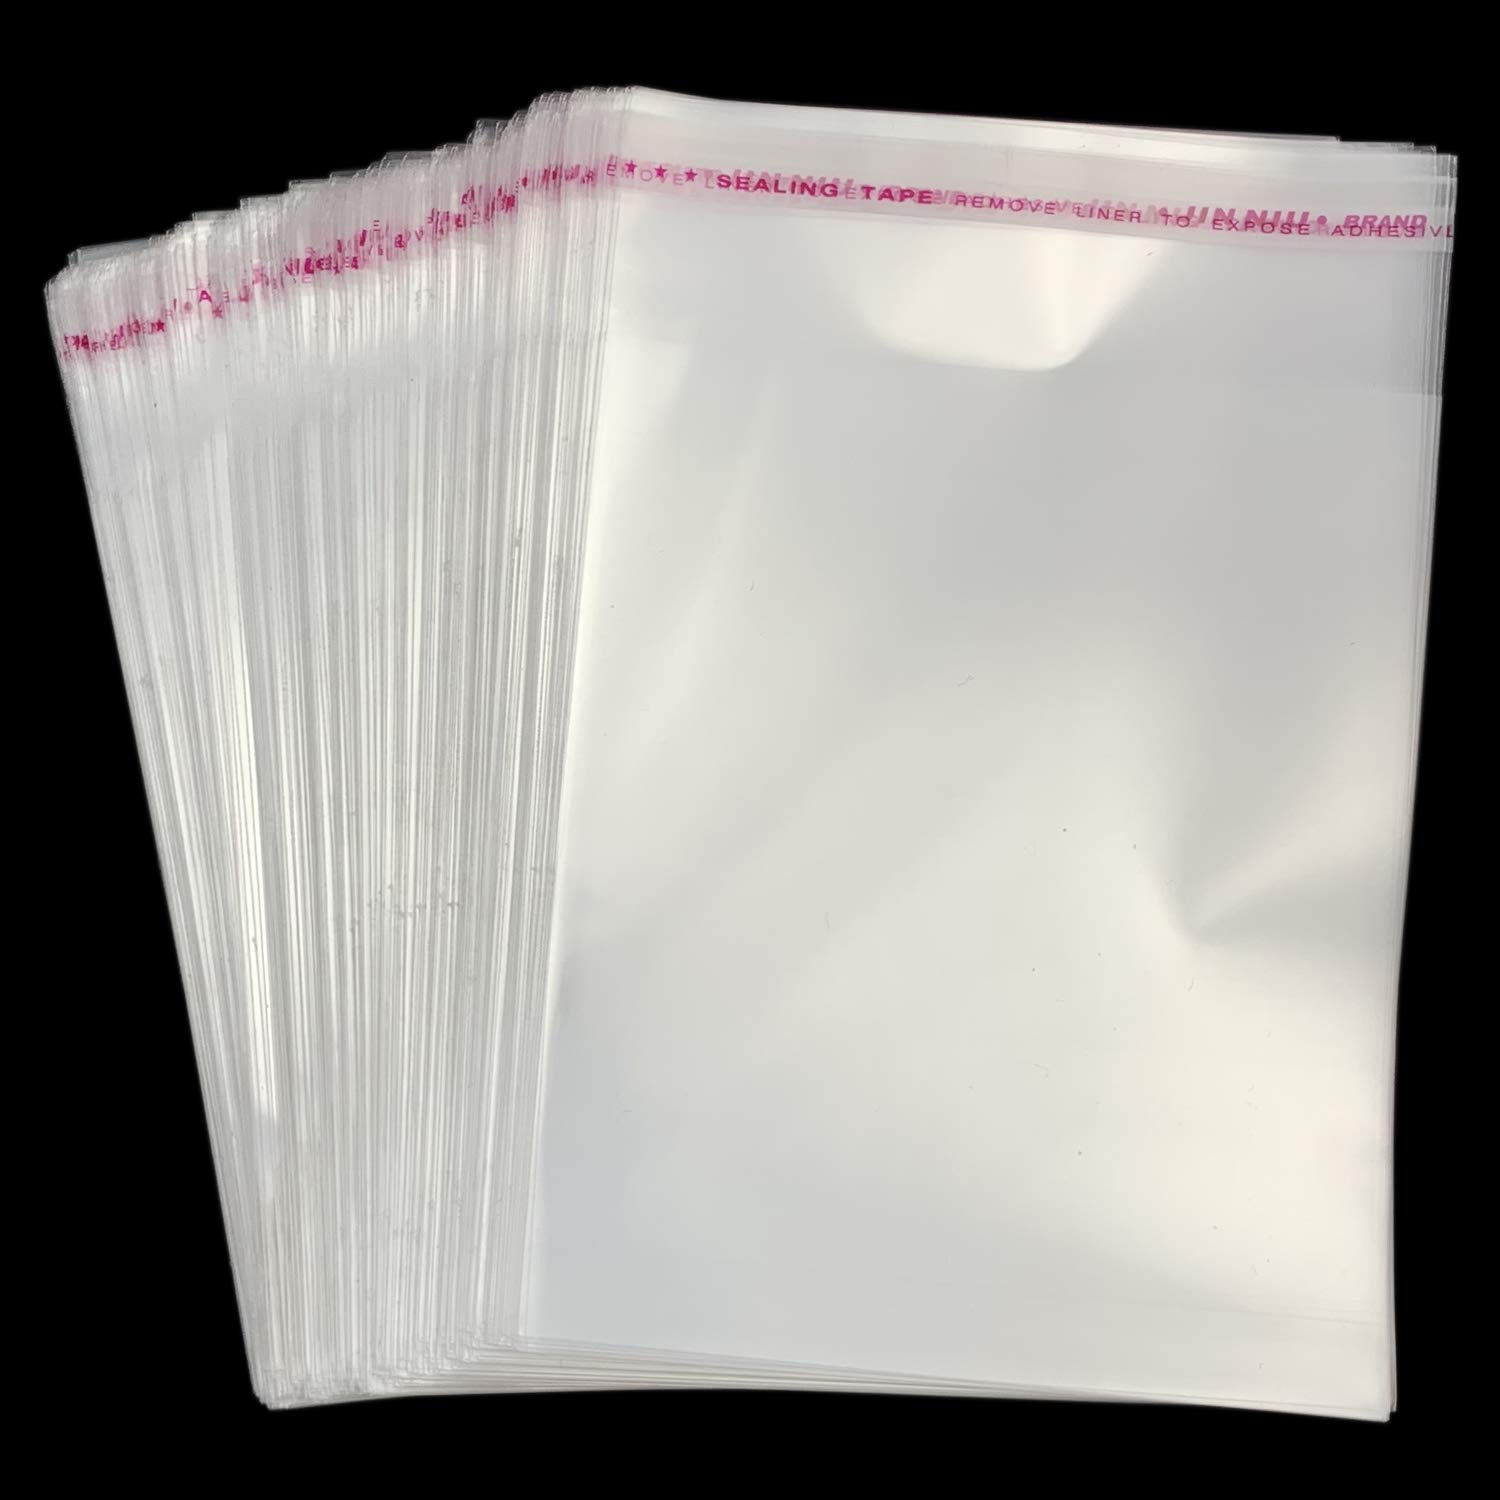 Soap 400 Pcs 4x6 Clear Resealable Cello//Cellophane Bags Good for Bakery Candle Cookie Poly Bags